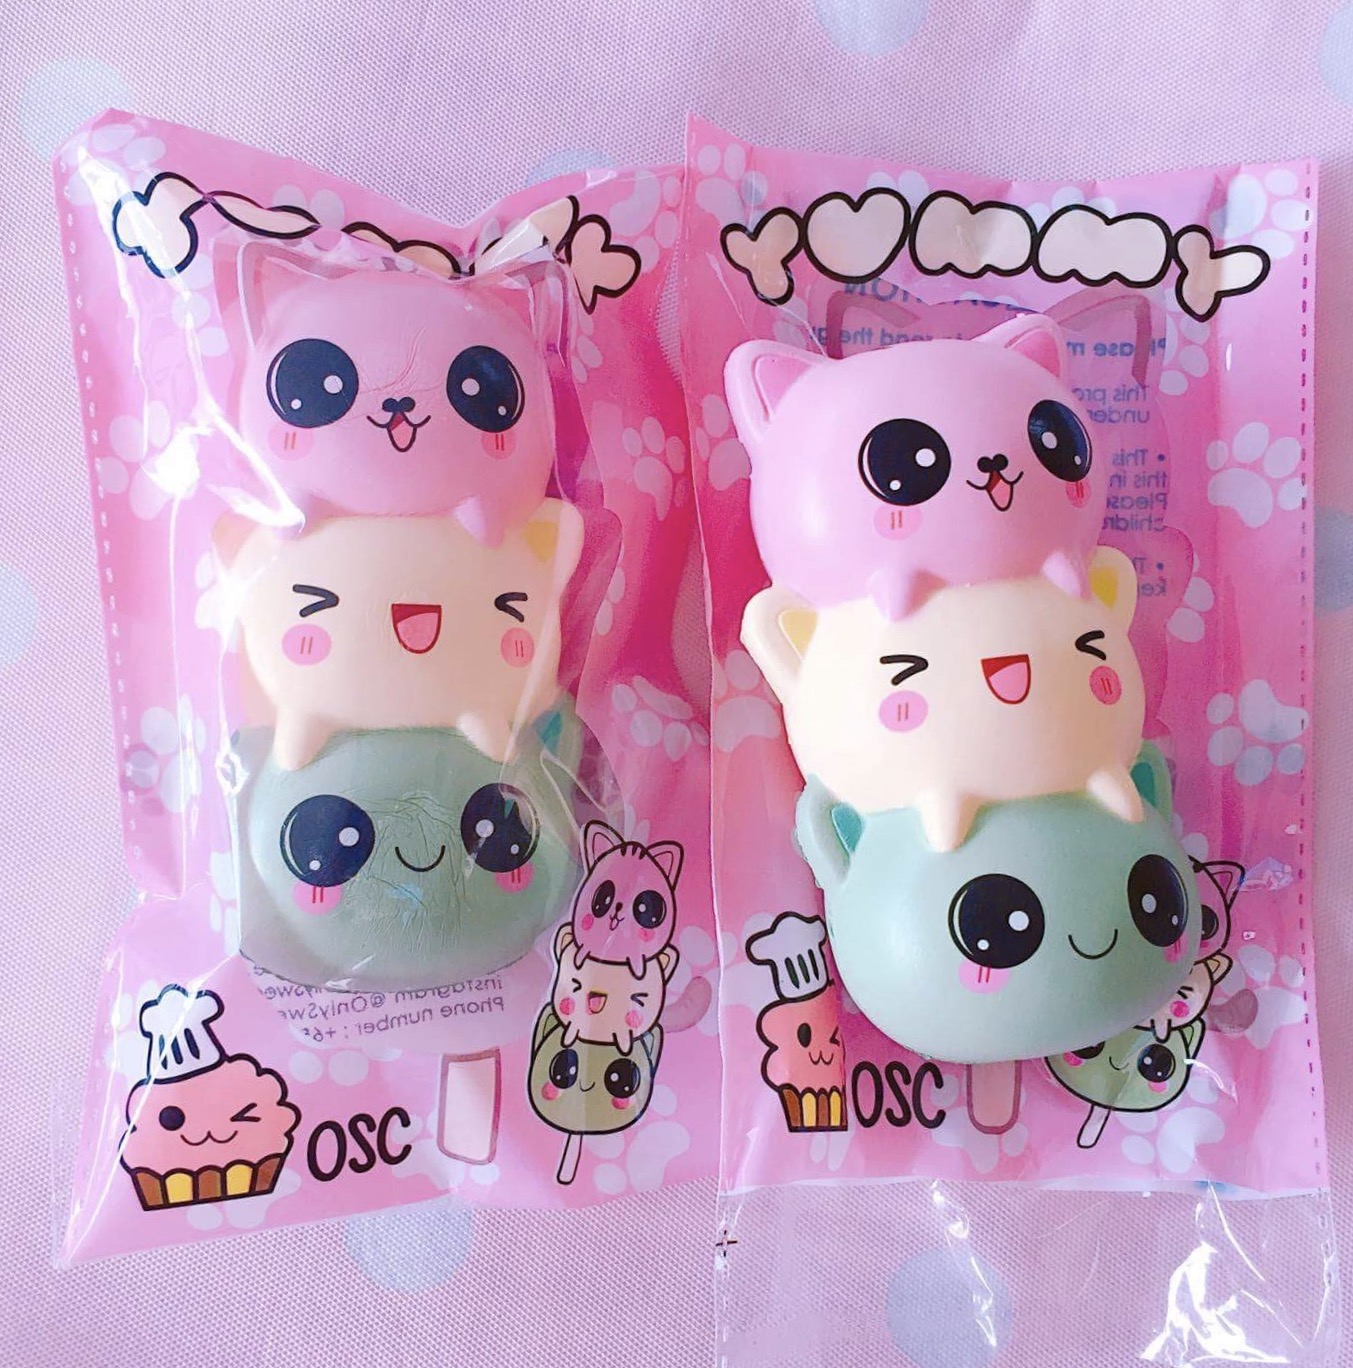 Pink And Blue Bedroom Onlysweetcafe Kitty Dango Squishy Soft Scented